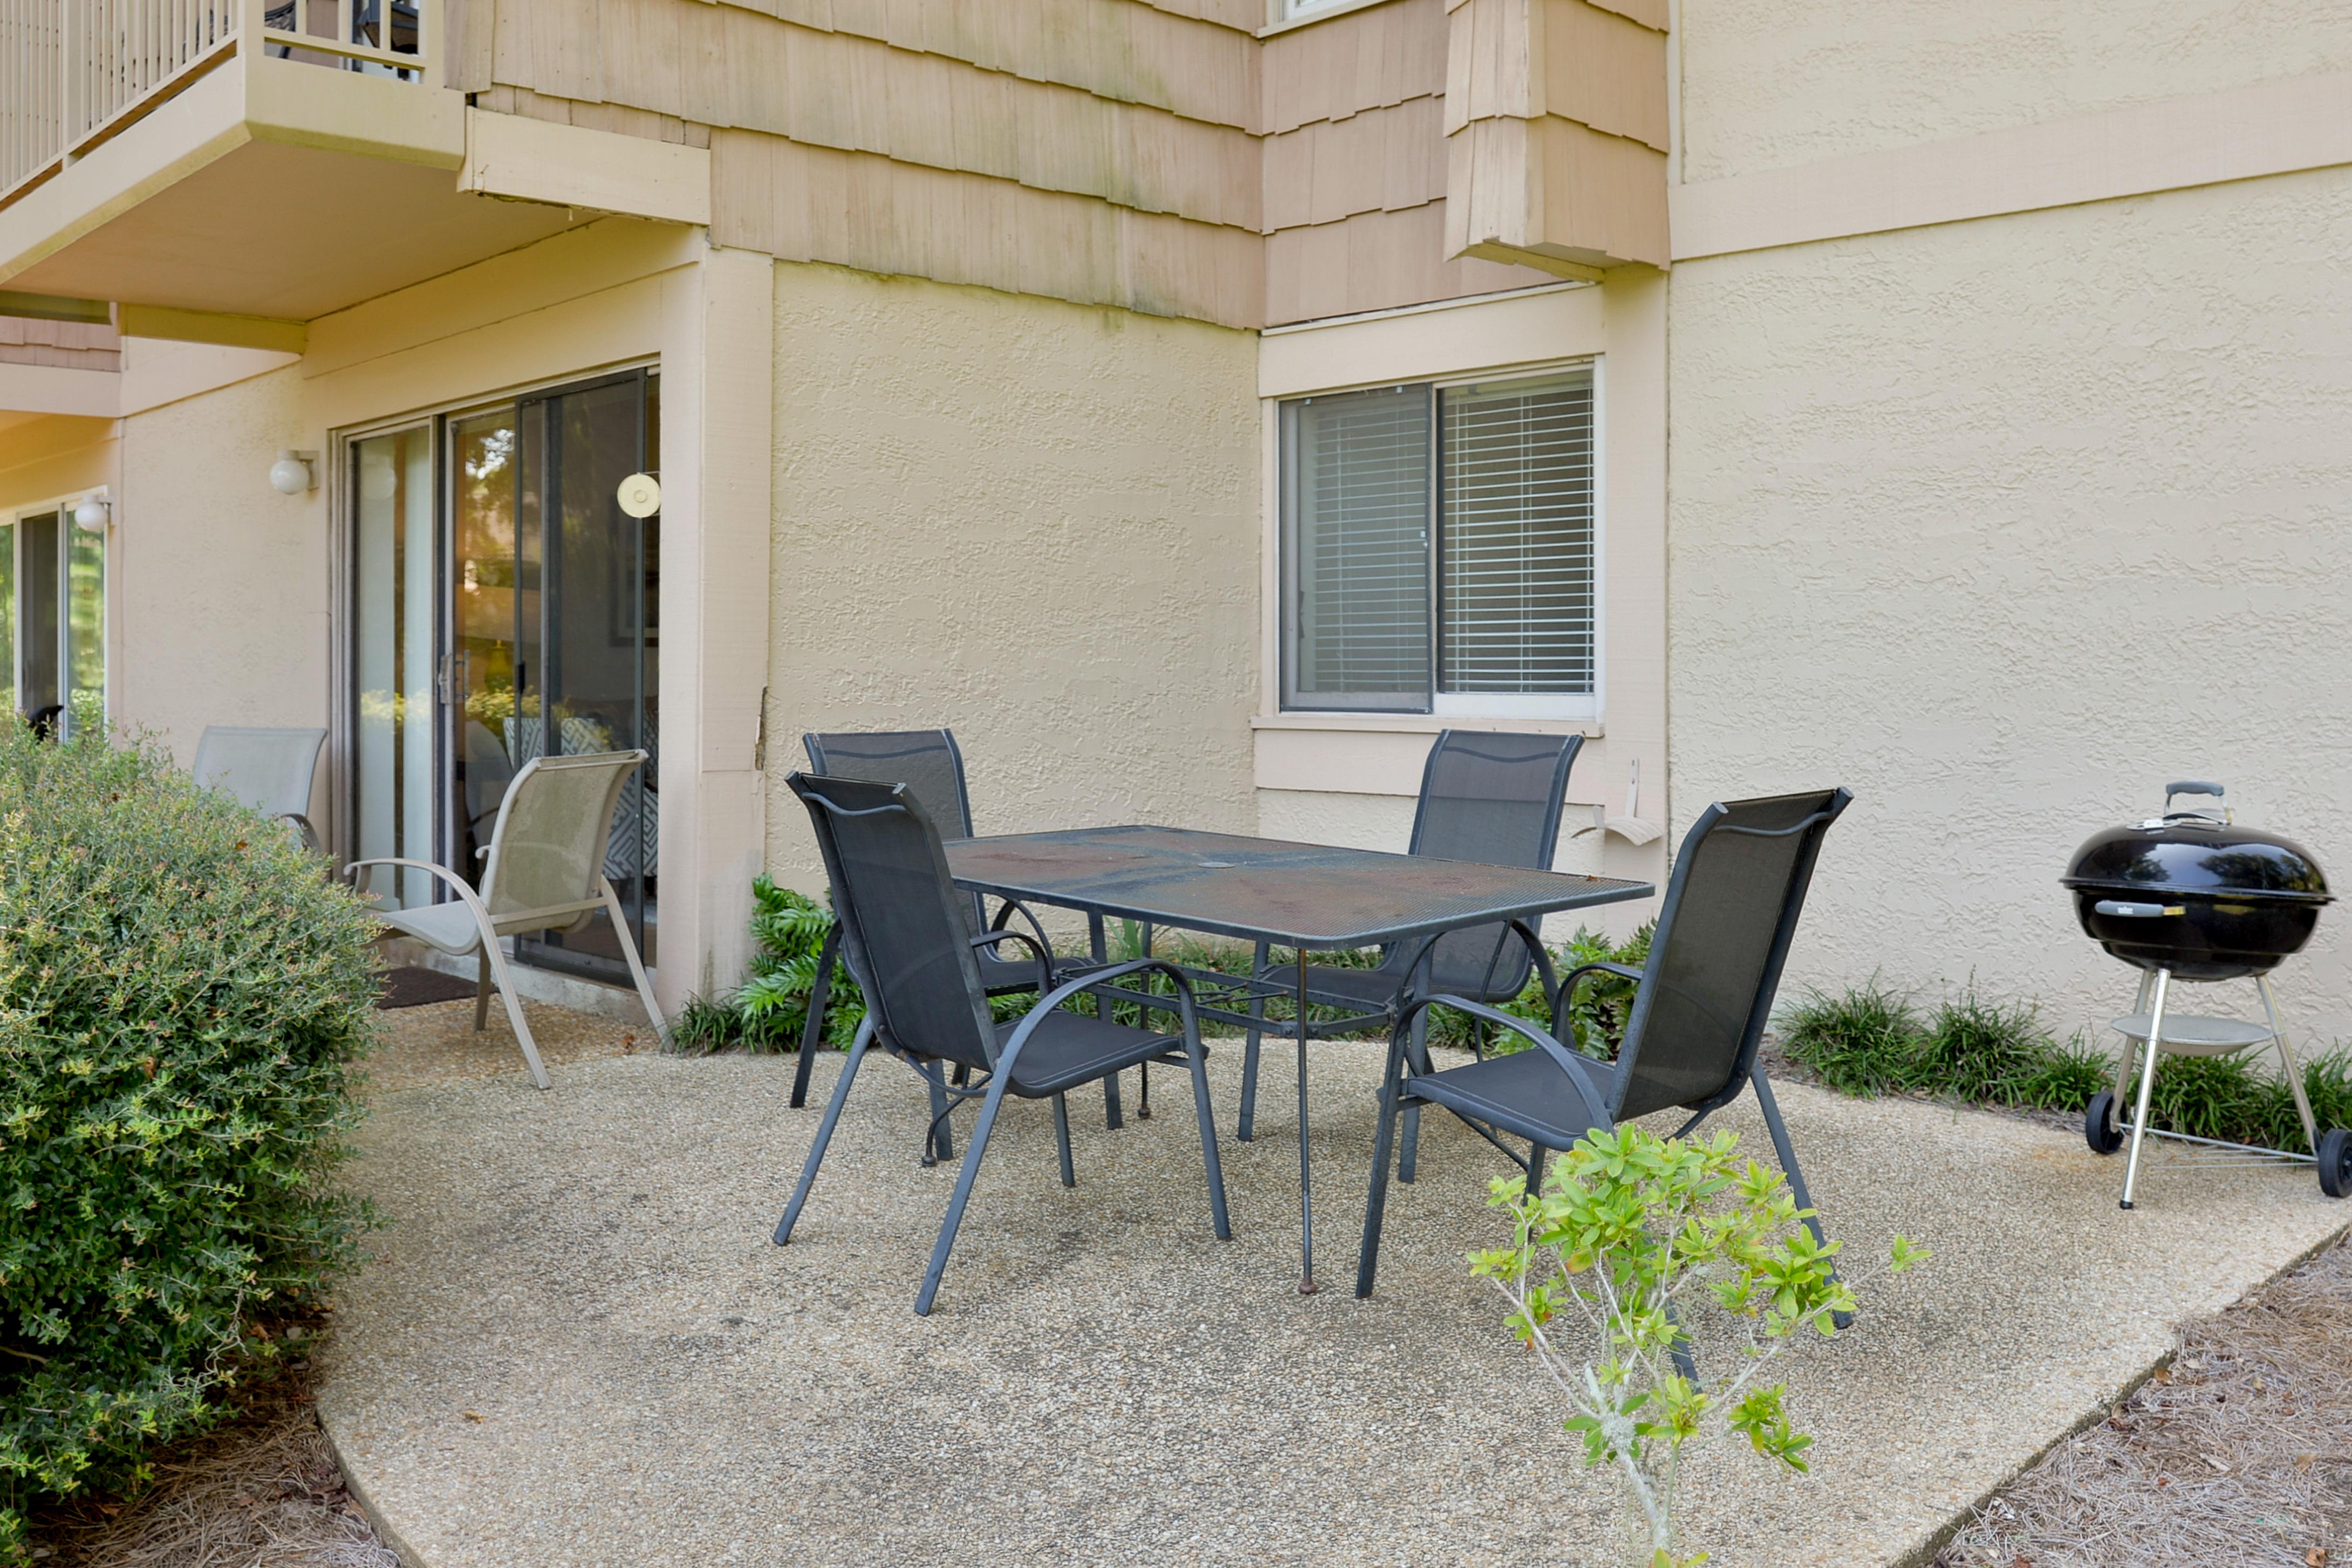 Start the day with breakfast outdoors on your own patio.